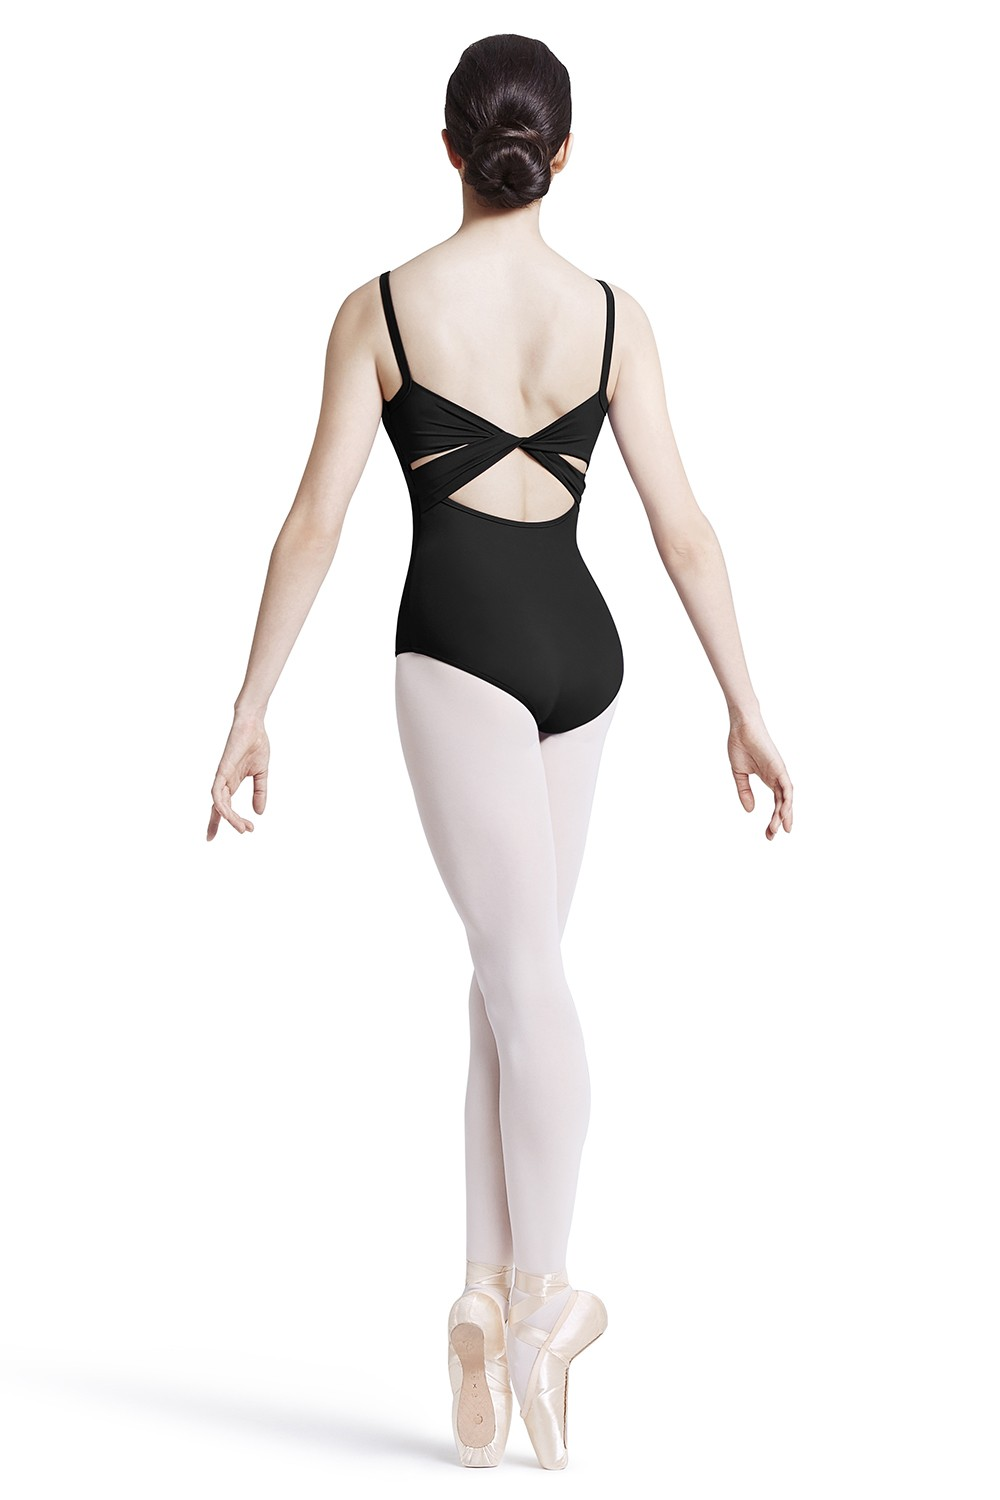 Body A Spalline Sottili Con Retro Ritorto Women's Dance Leotards